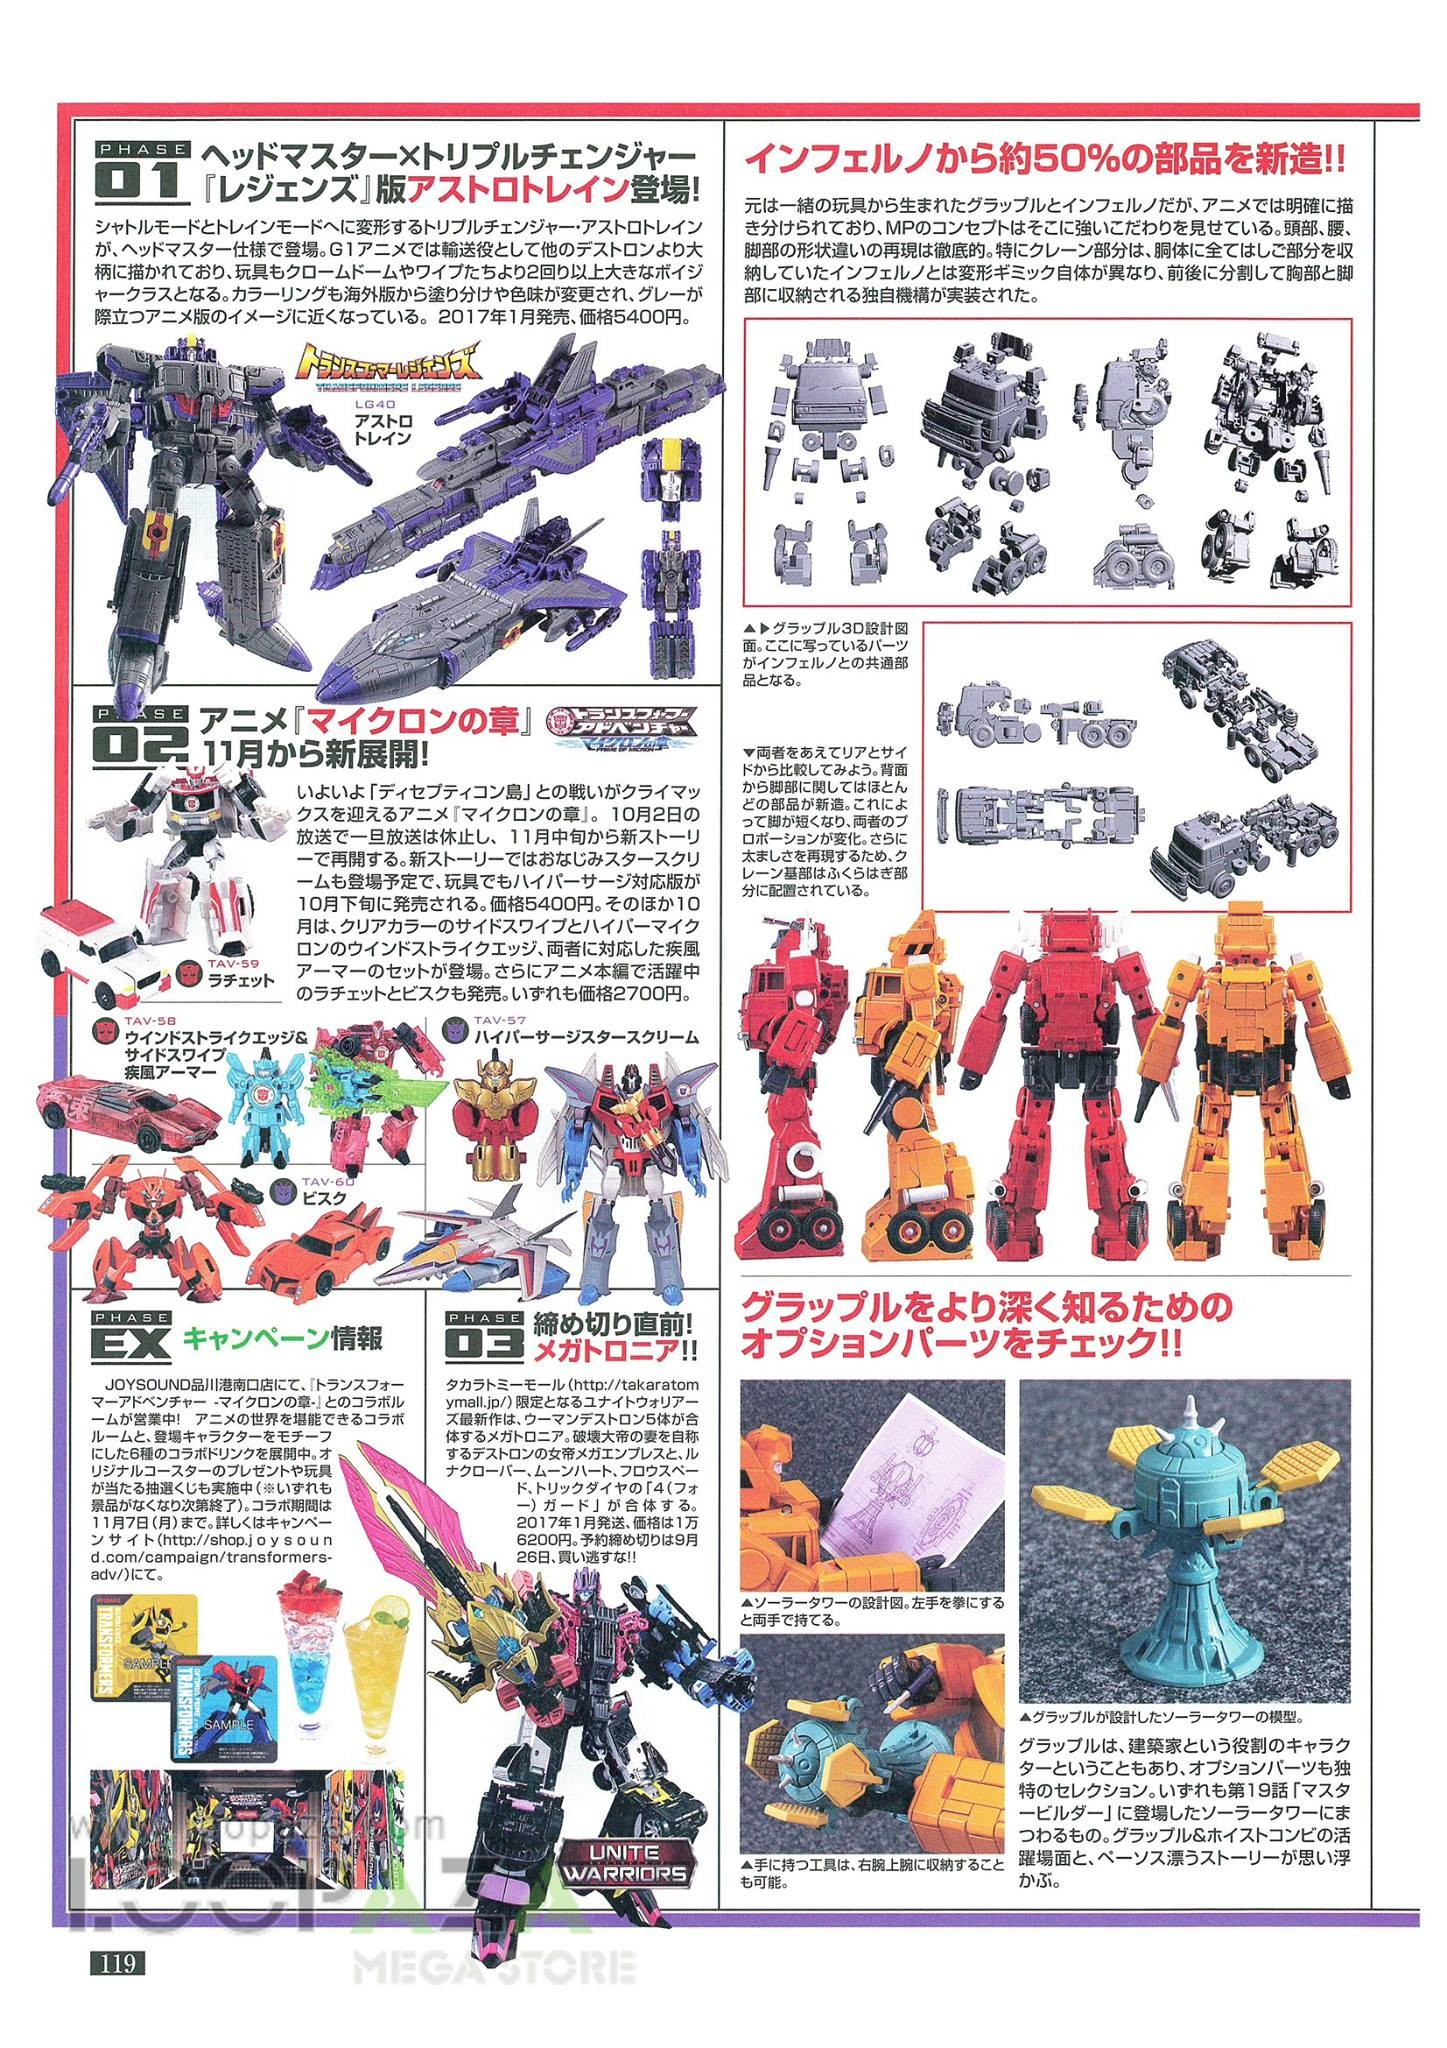 Transformers News: New Images of Transformers Masterpiece MP-35 Grapple With Size Comparison and Part Sharing Breakdown